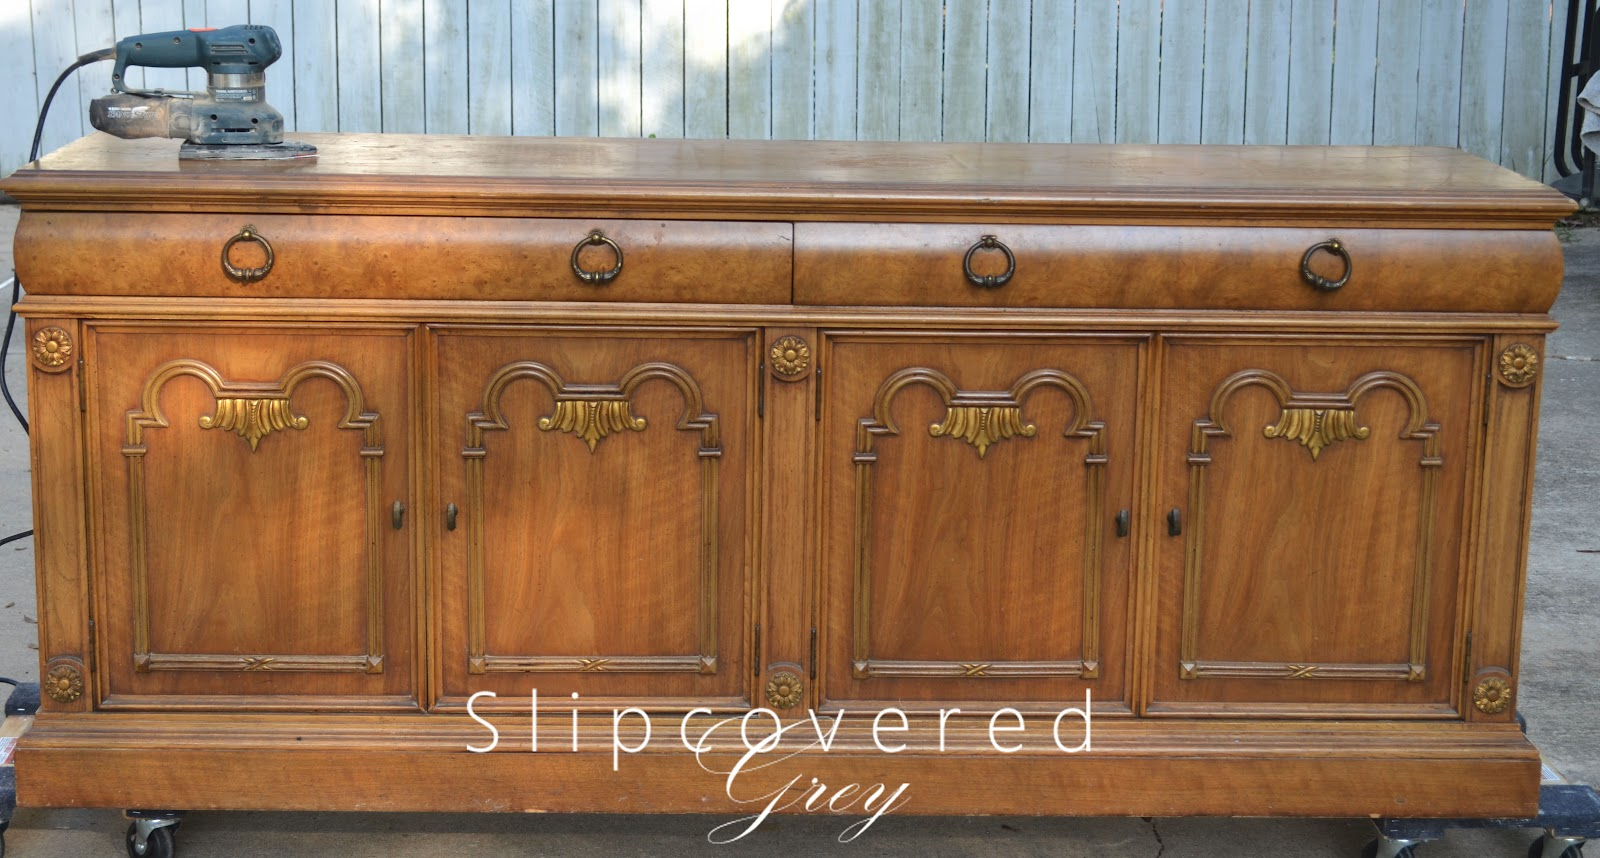 diy sideboard slipcovered grey. Black Bedroom Furniture Sets. Home Design Ideas